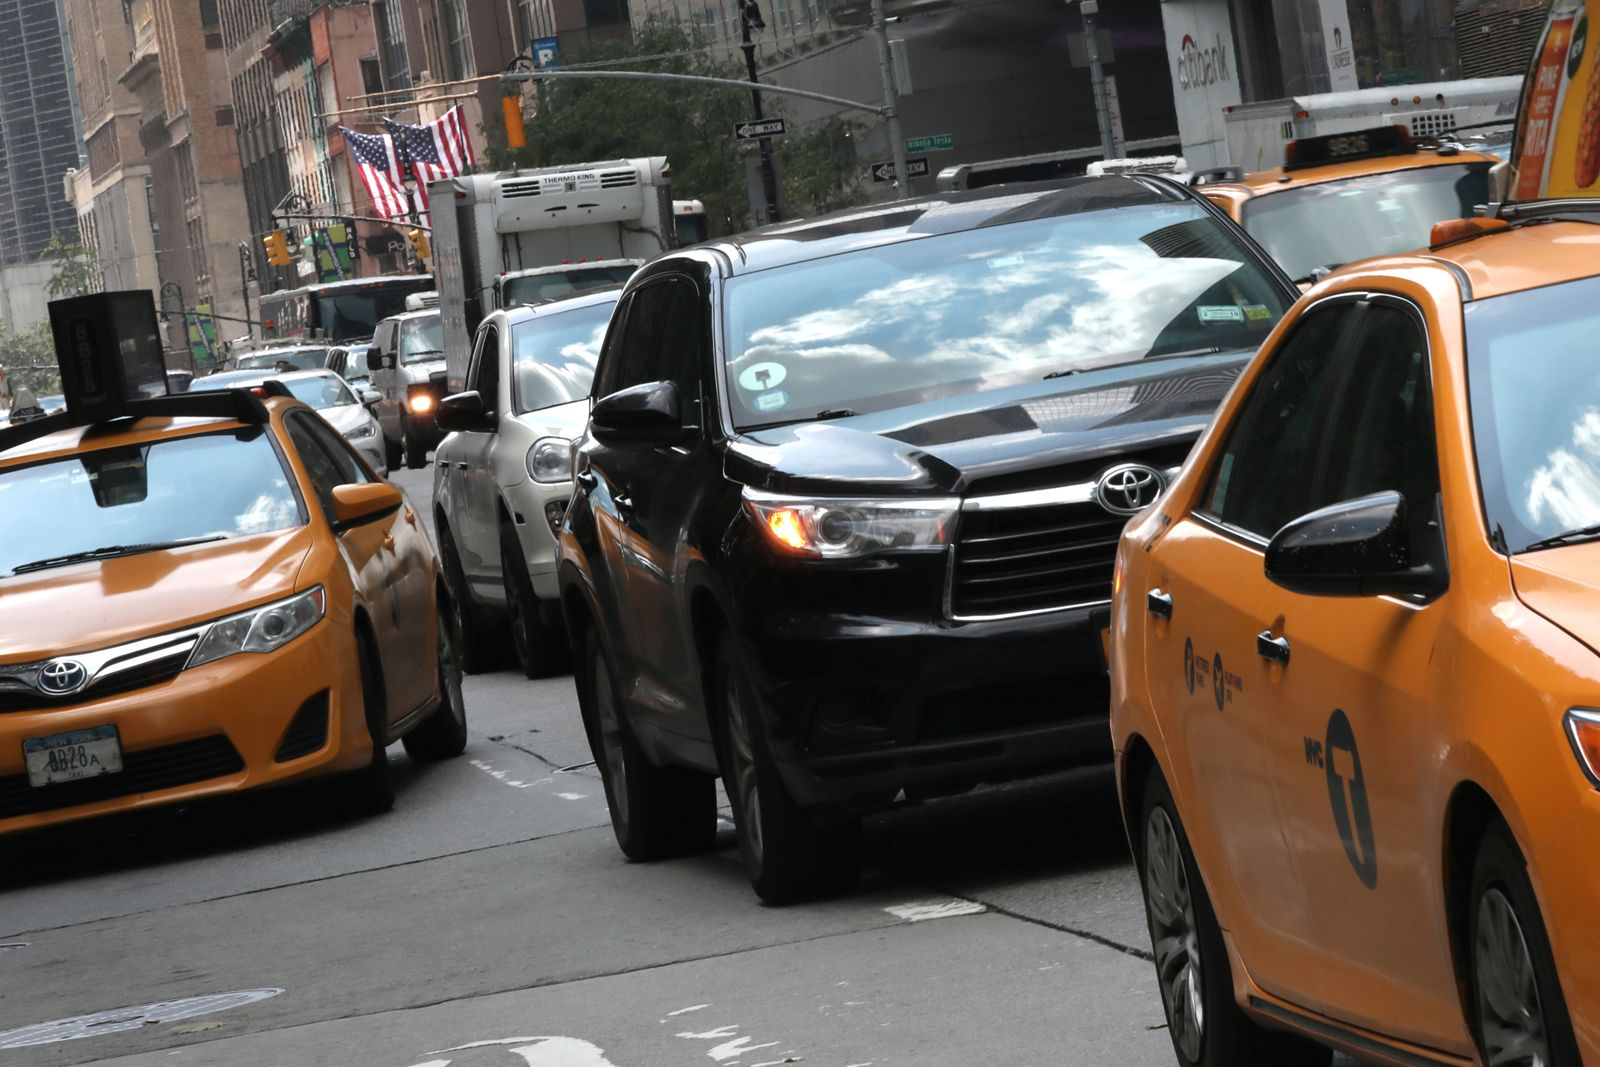 Uber / Taxi / New York